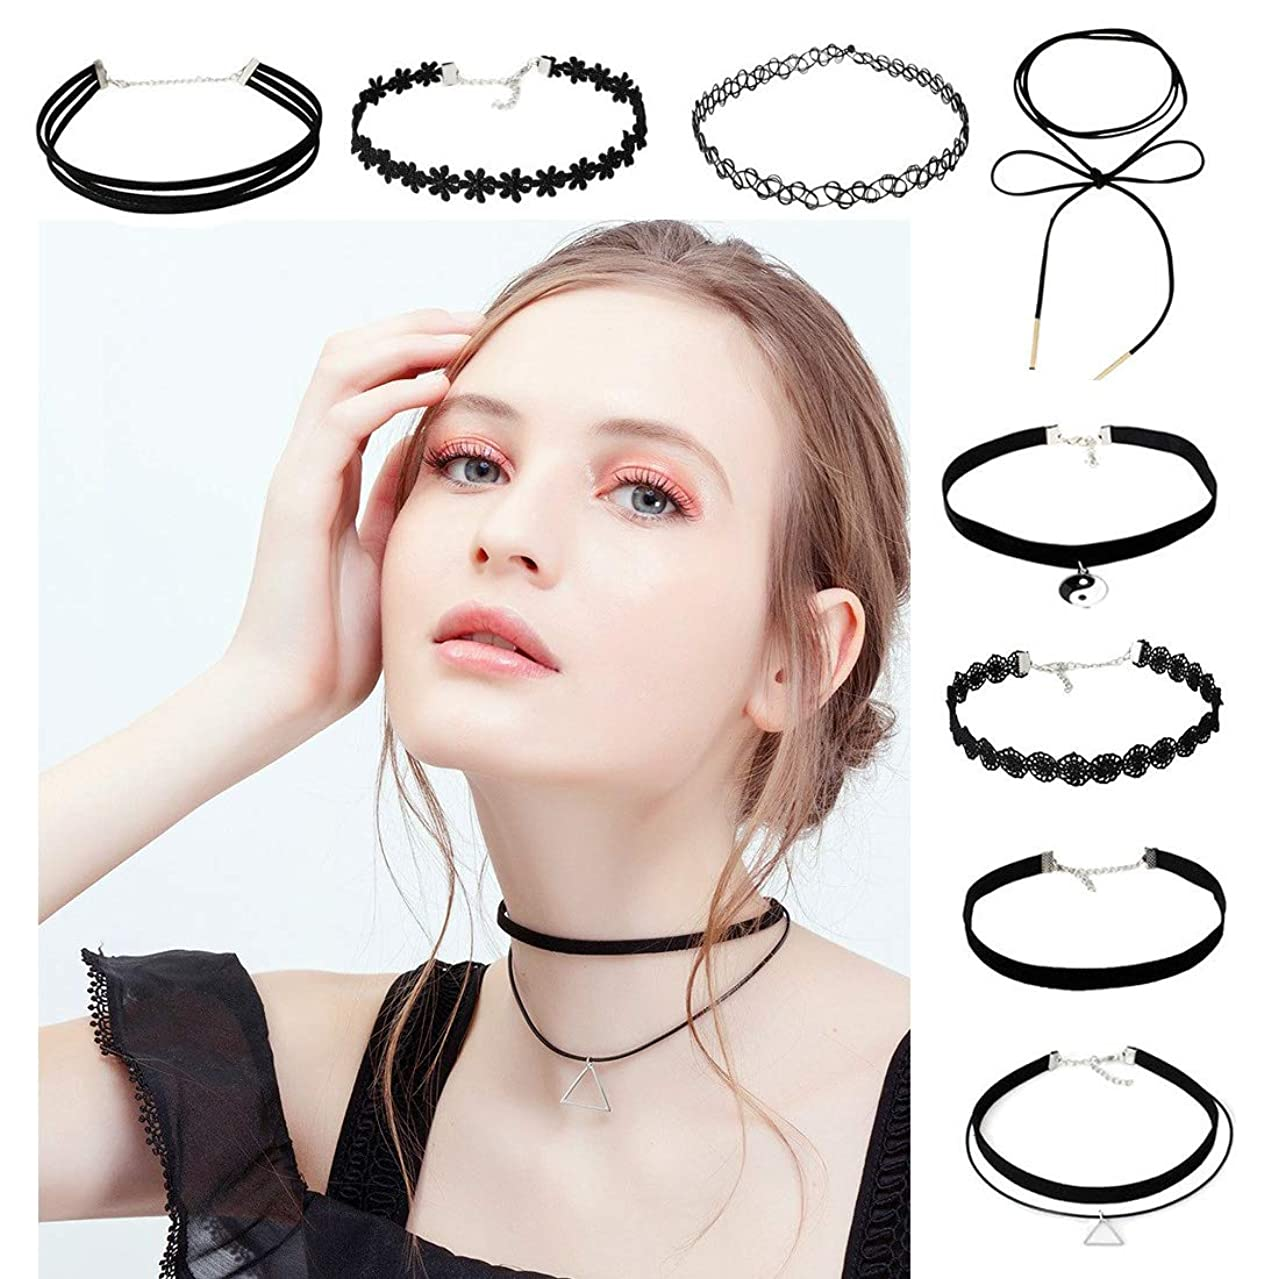 Elastic Lace Choker Necklace Black Fashionable Gothic Choker Necklace for Women and Girls, Pack of 8